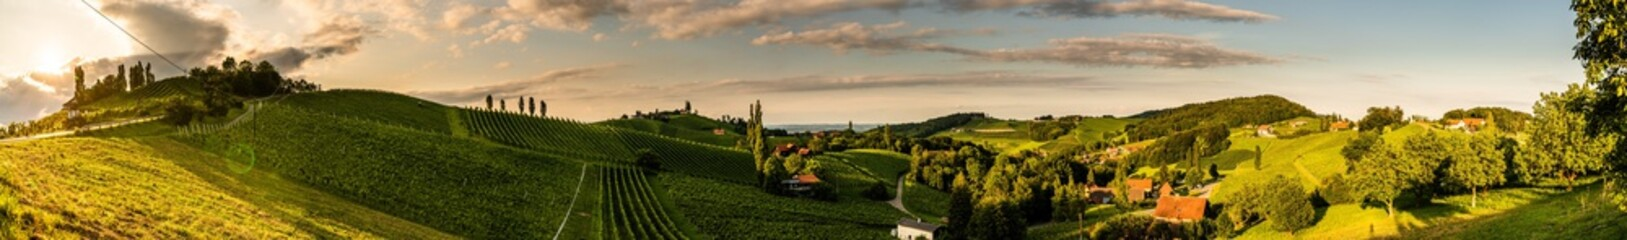 Panorama view of Vineyards in summer in south Styria, Austria tourist spot, travel destination.